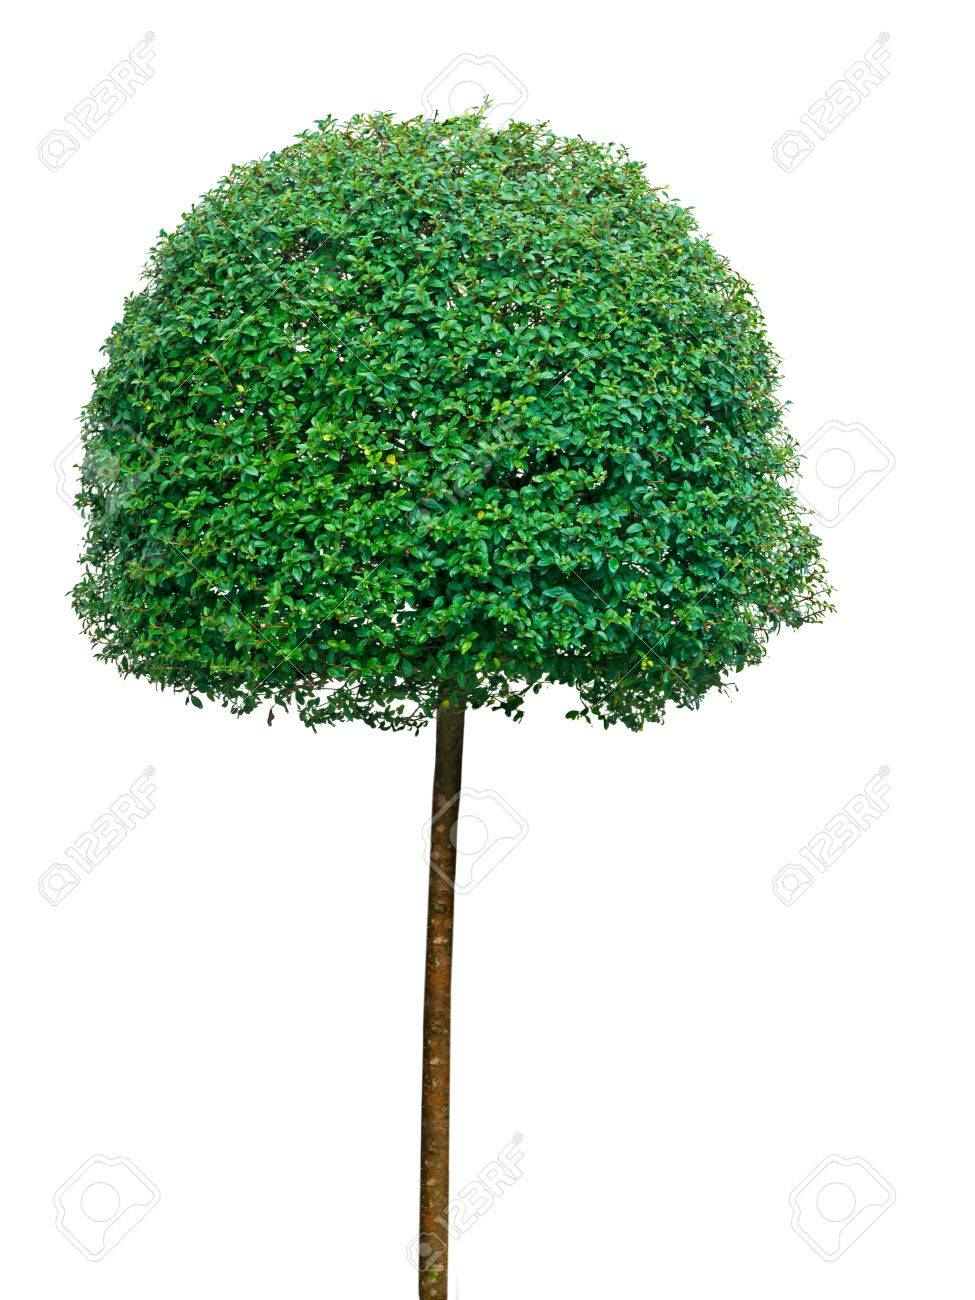 Topiary Tree Isolated On White Evergreen Clipped Into Shape Stock Photo Picture And Royalty Free Image Image 32993708